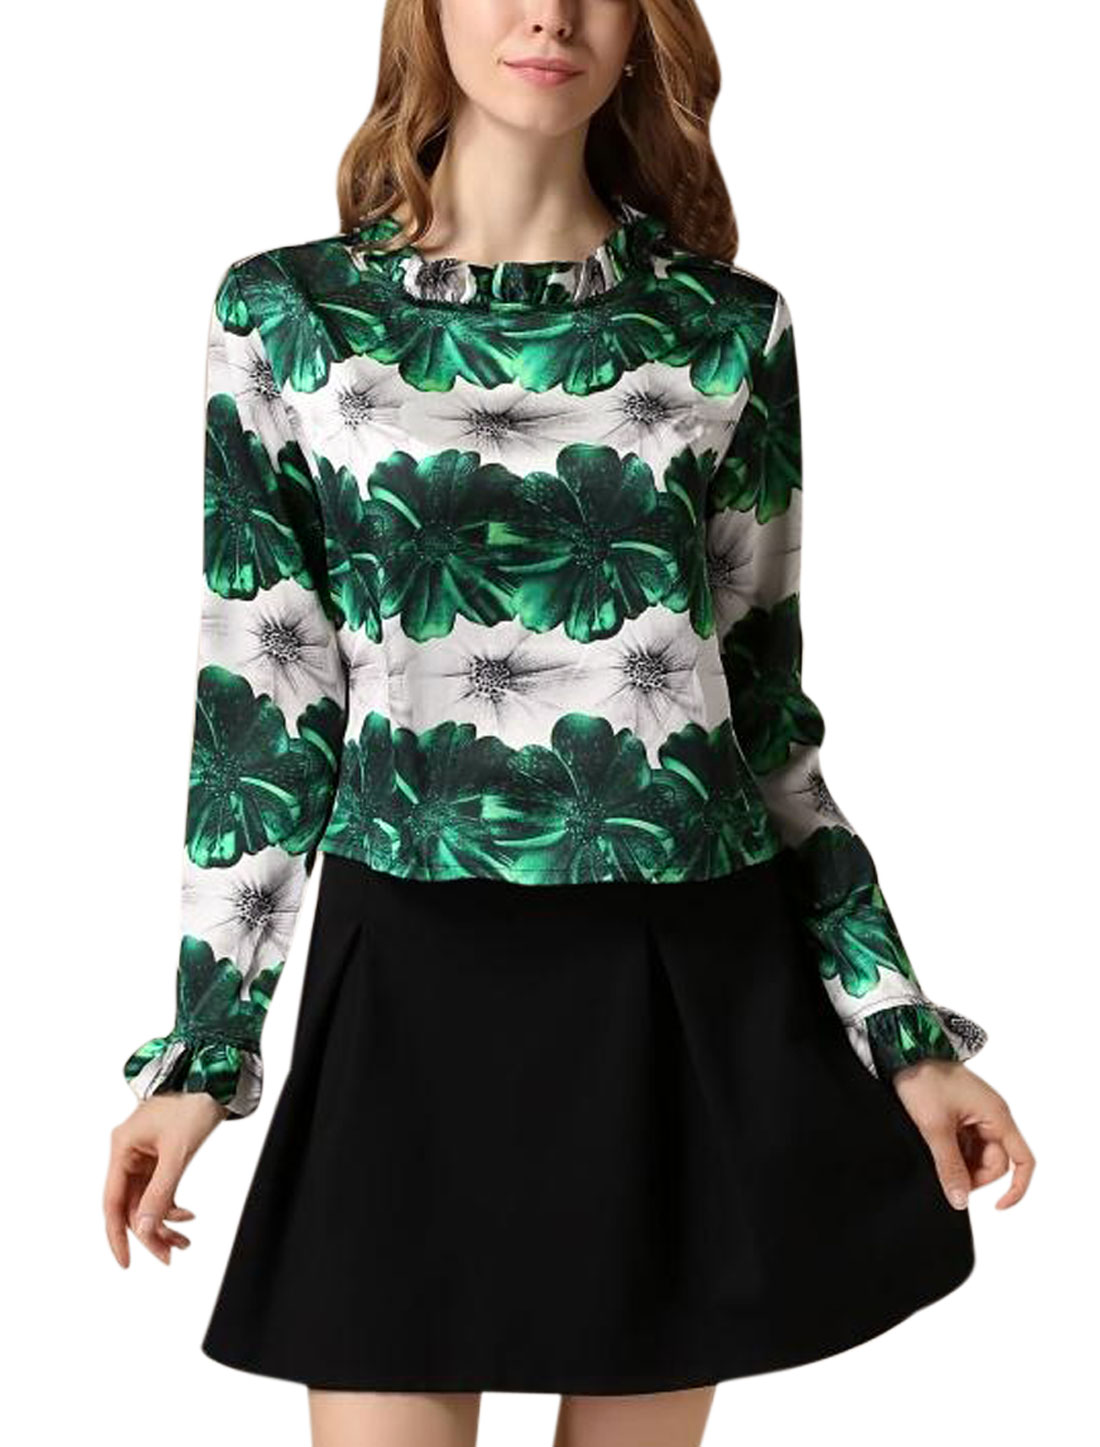 Women Floral Prints Hidden Zipper Back Ruffled Collar Top Green Beige S